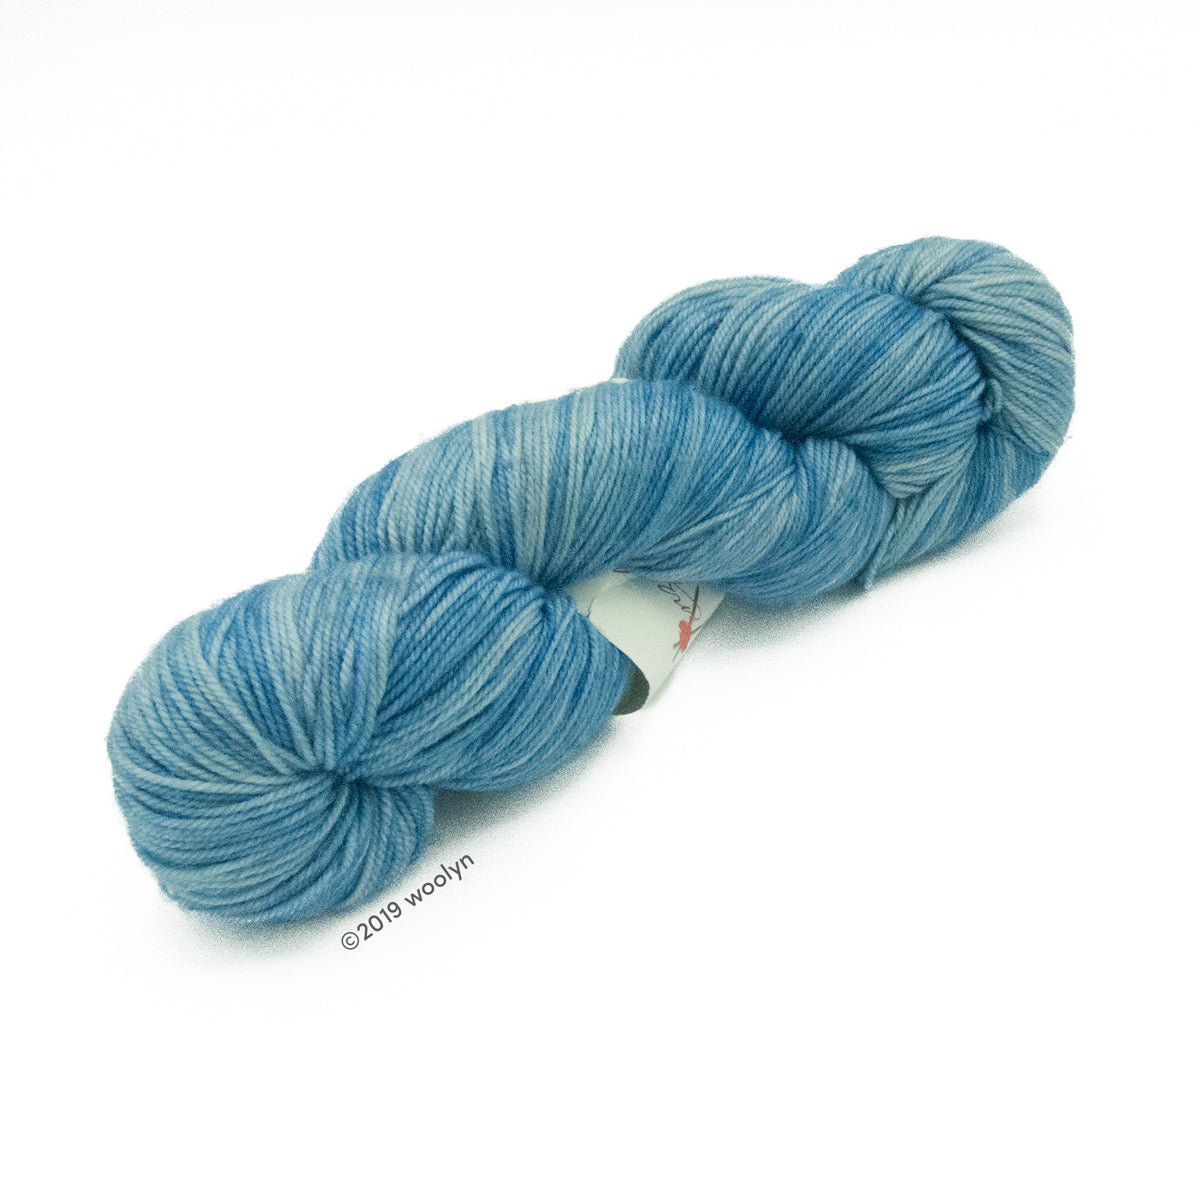 Hand dyed  fingering weight yarn in light blue tonal shades twisted into a skein.